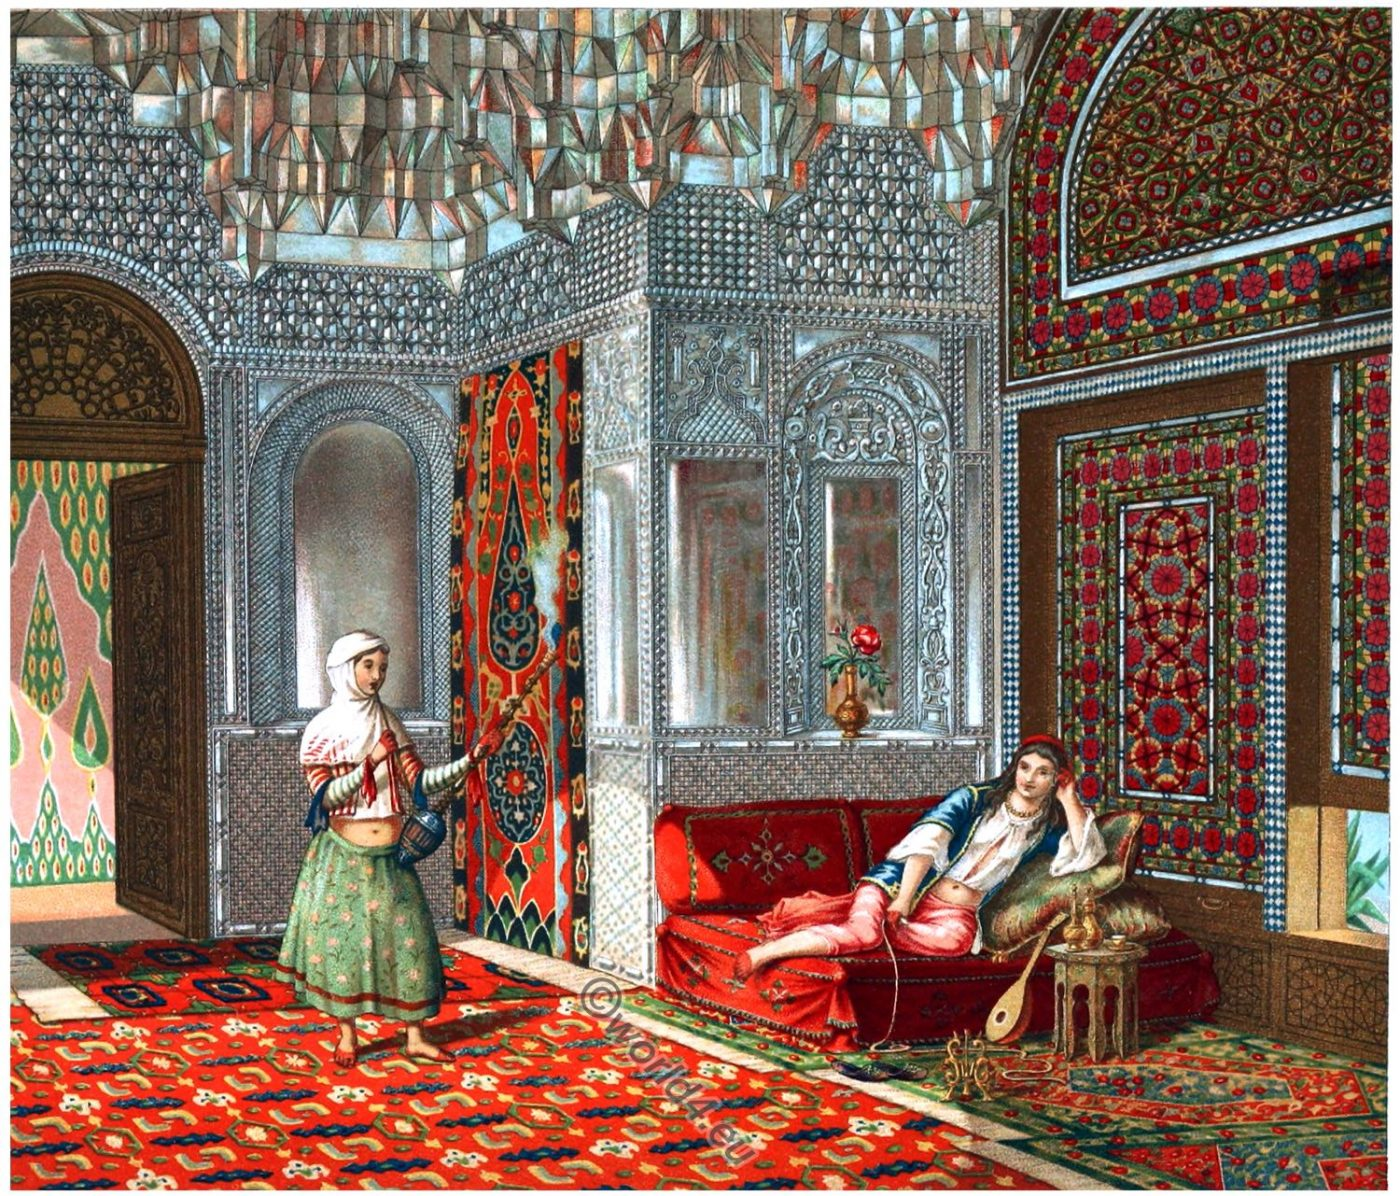 Persia, Persian, room, wooden building, Interieur, Architecture, islamic art,  pleasure house